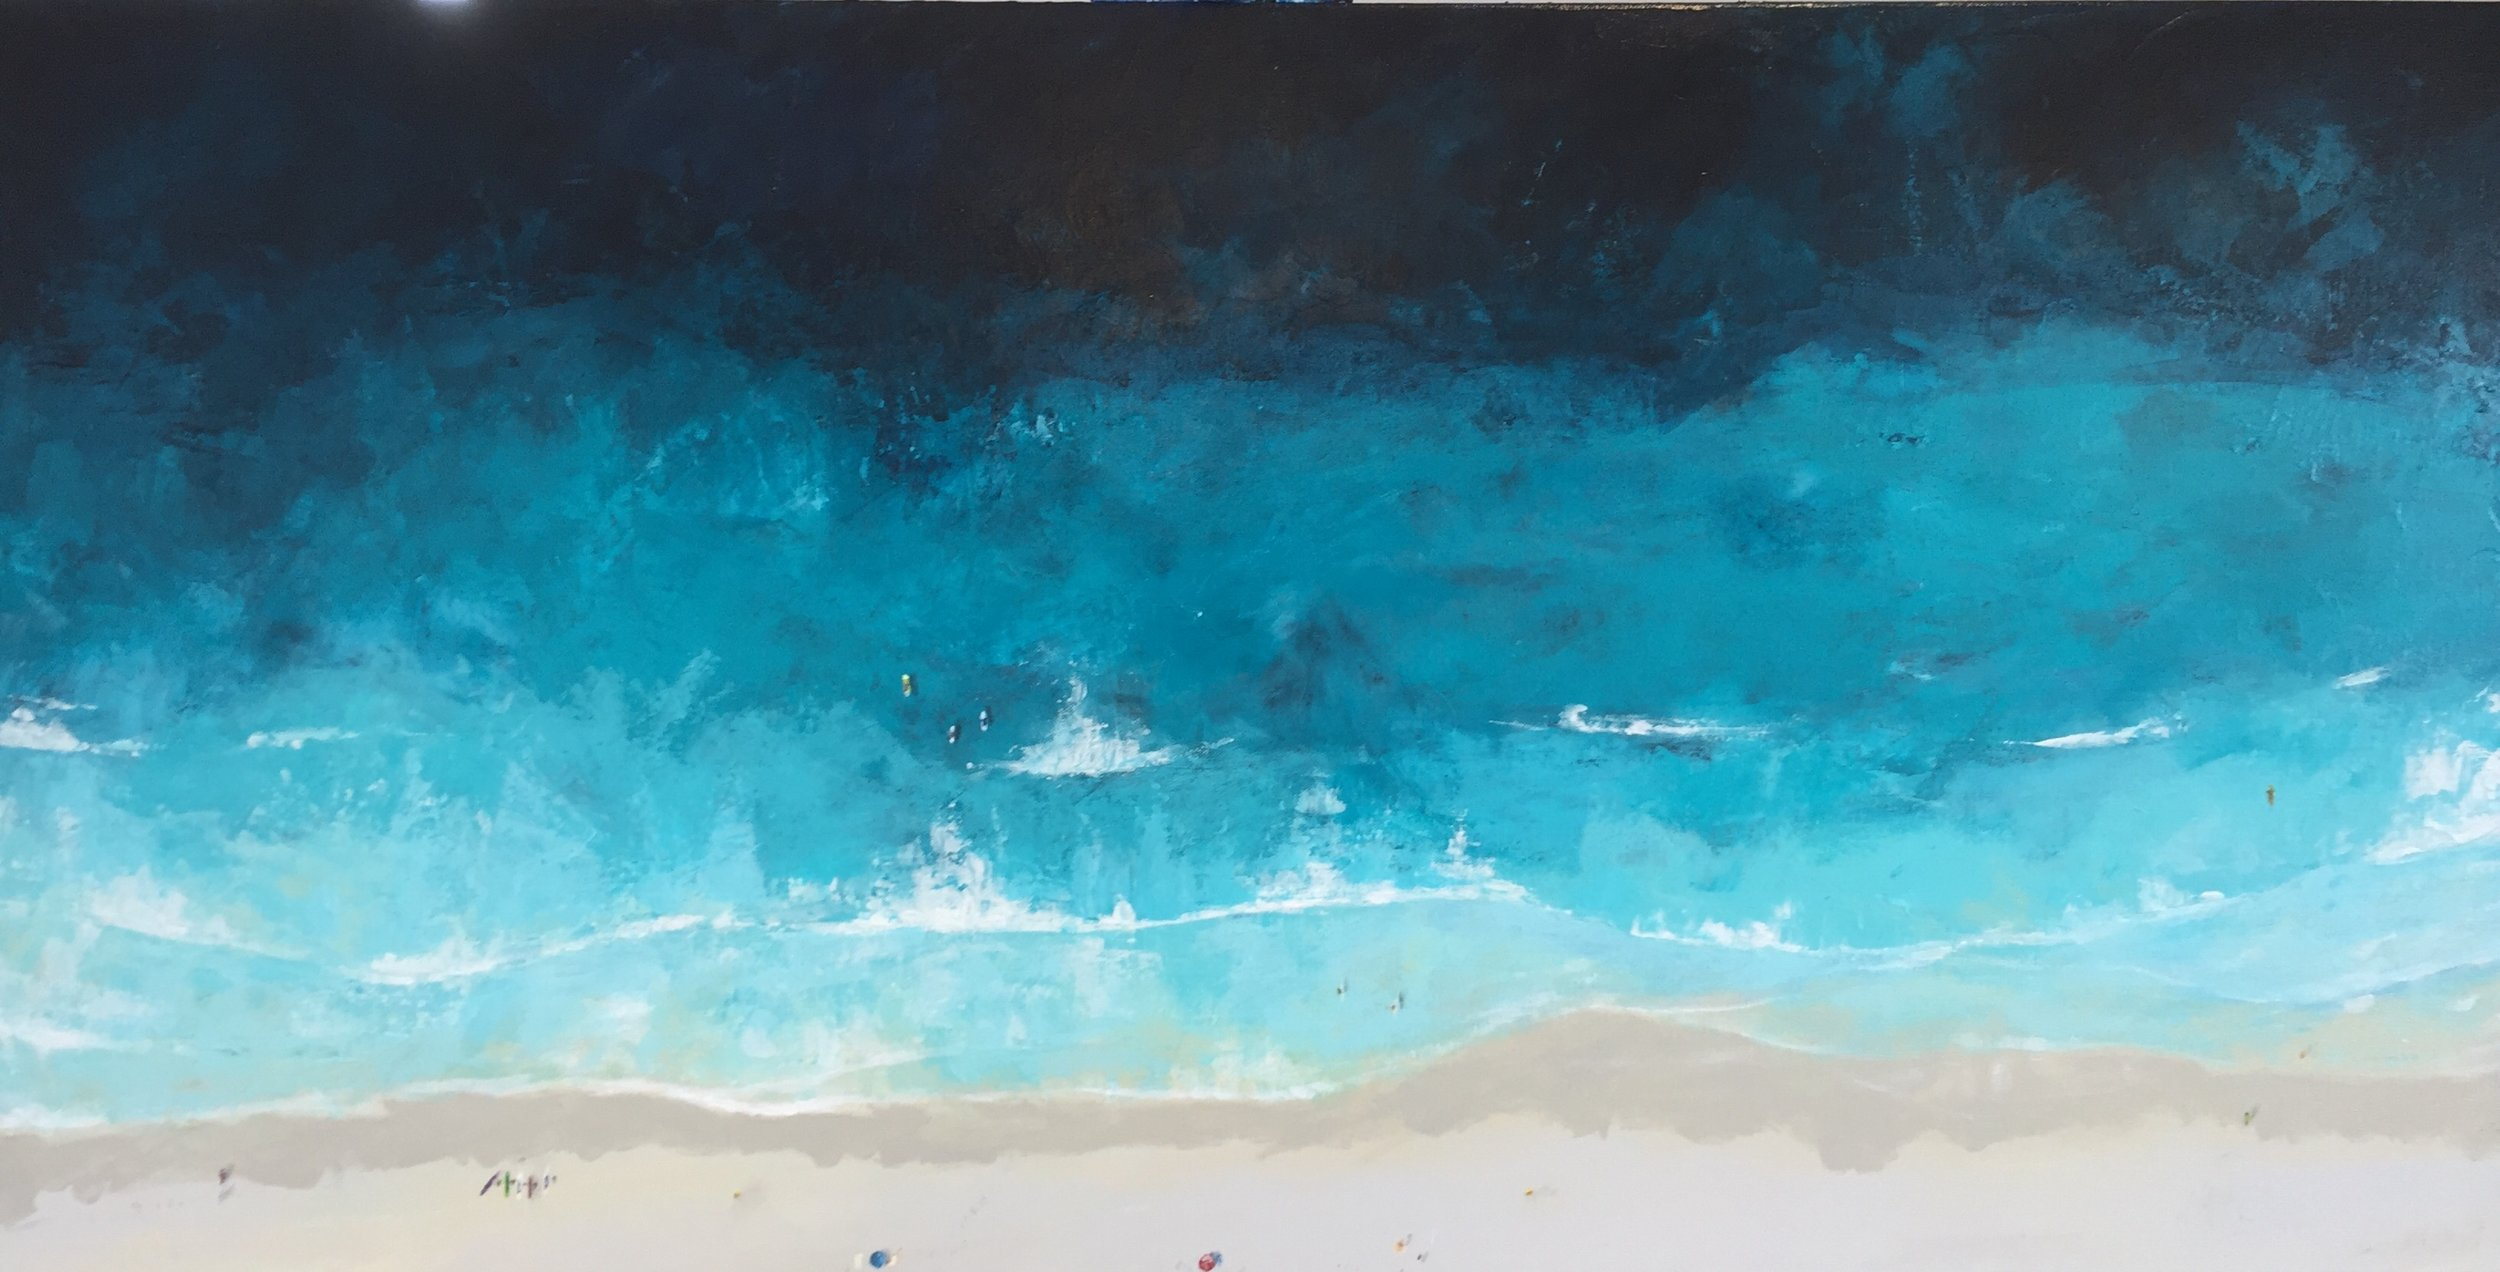 A Summers Day - SOLDAcrylic and impasto on gallery wrapped canvas.1500 x 650